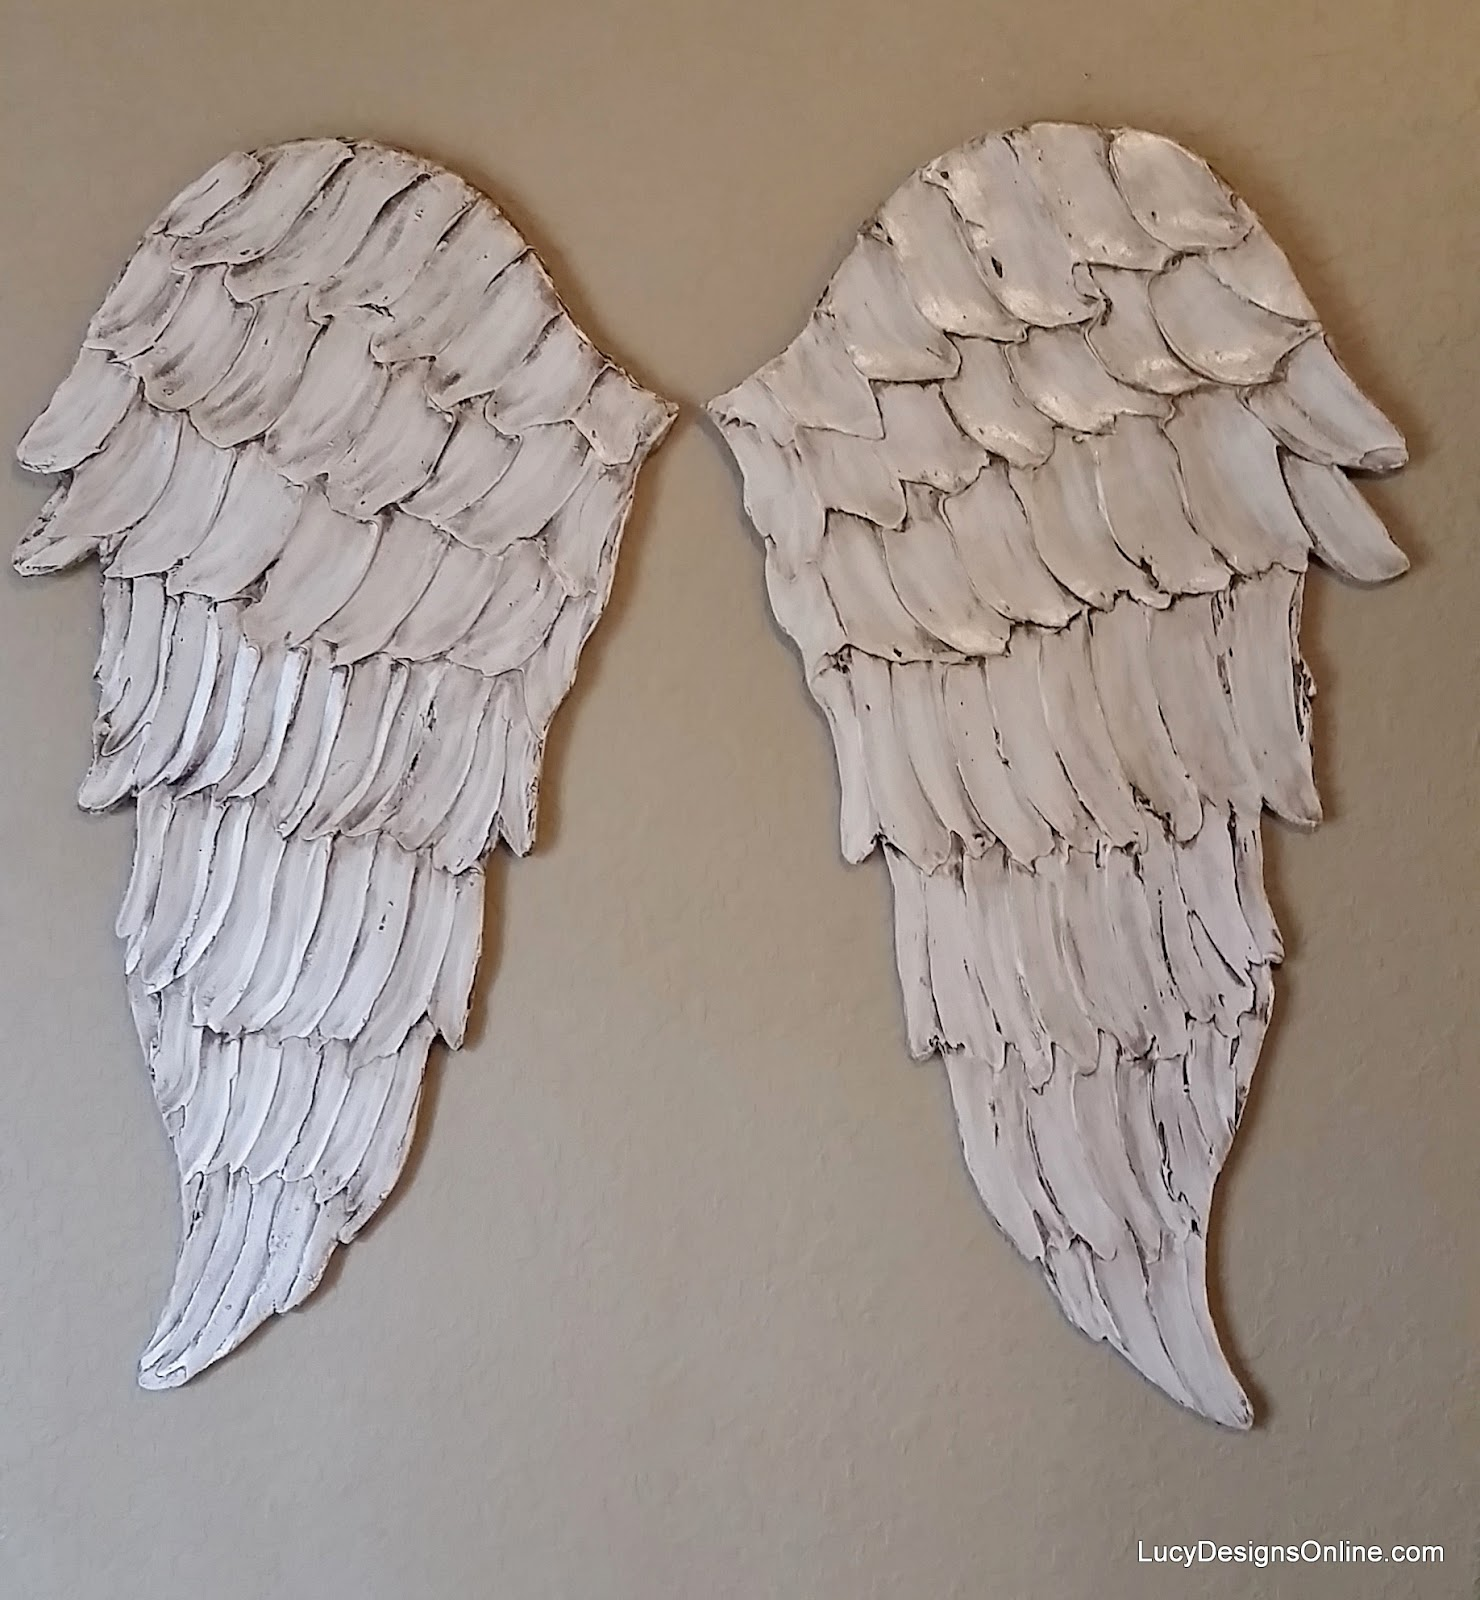 Wooden Angel Wings Wall Decor angel wings textured wood, wall art, carved wood look, angel wing